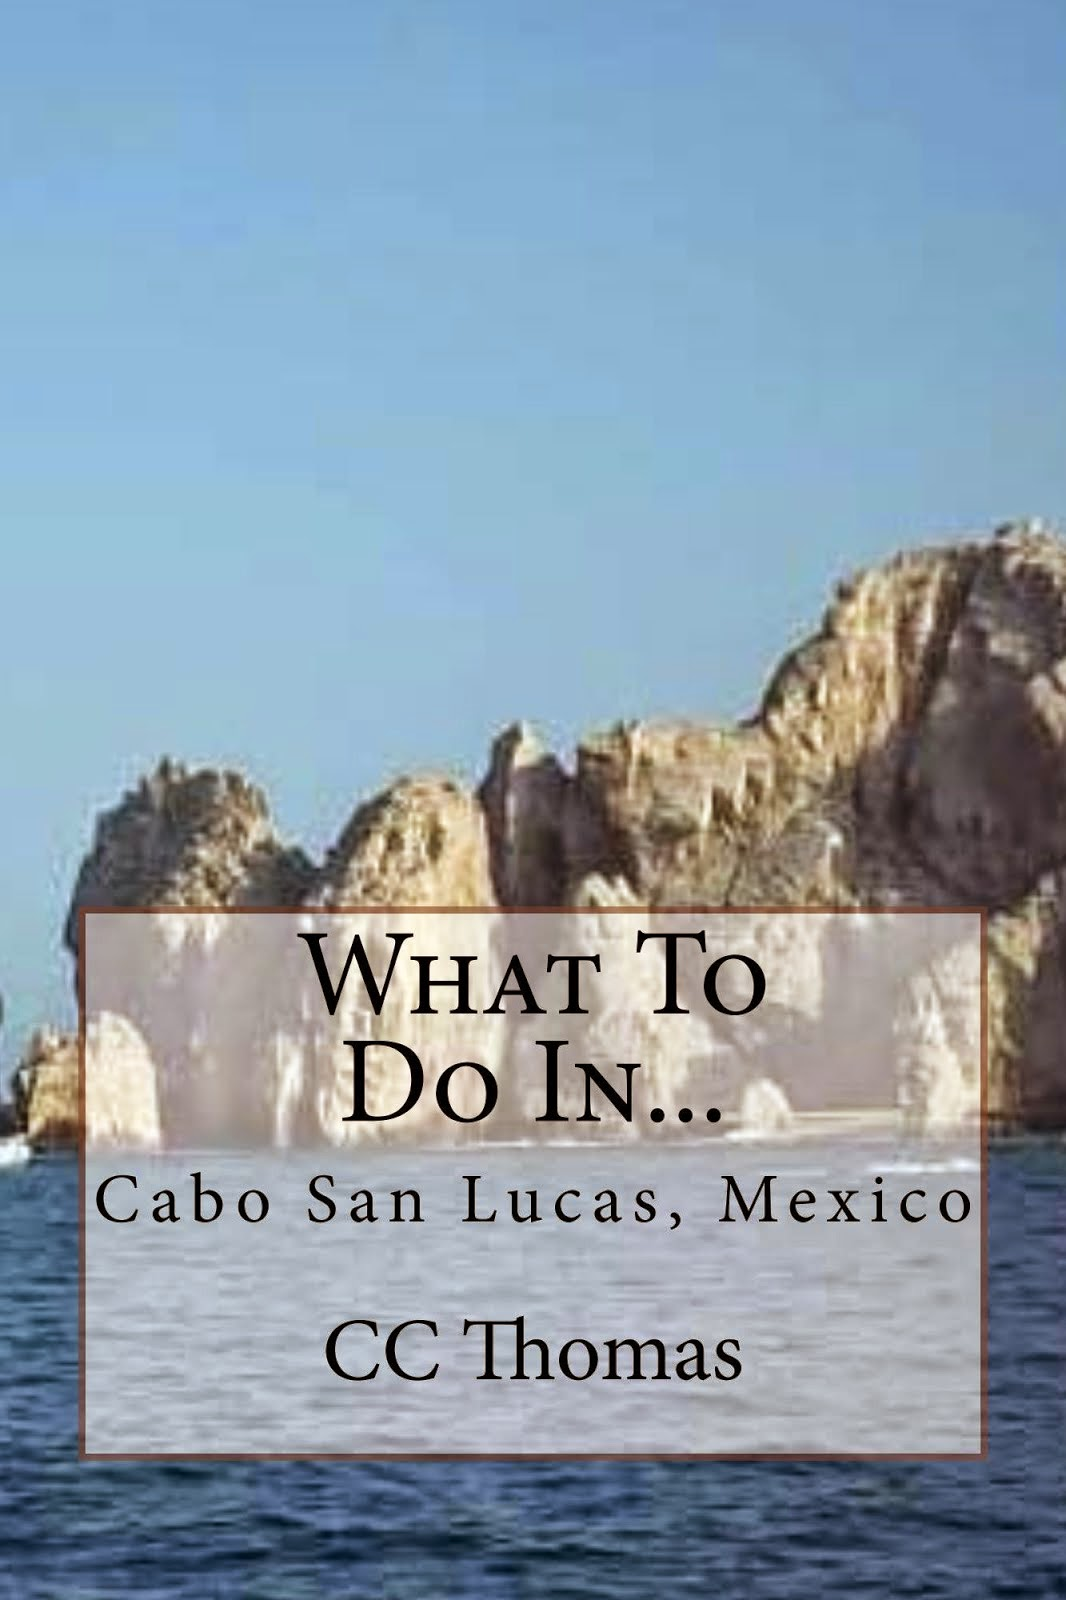 What To Do In...Cabo San Lucas, Baja California Sur, Mexico